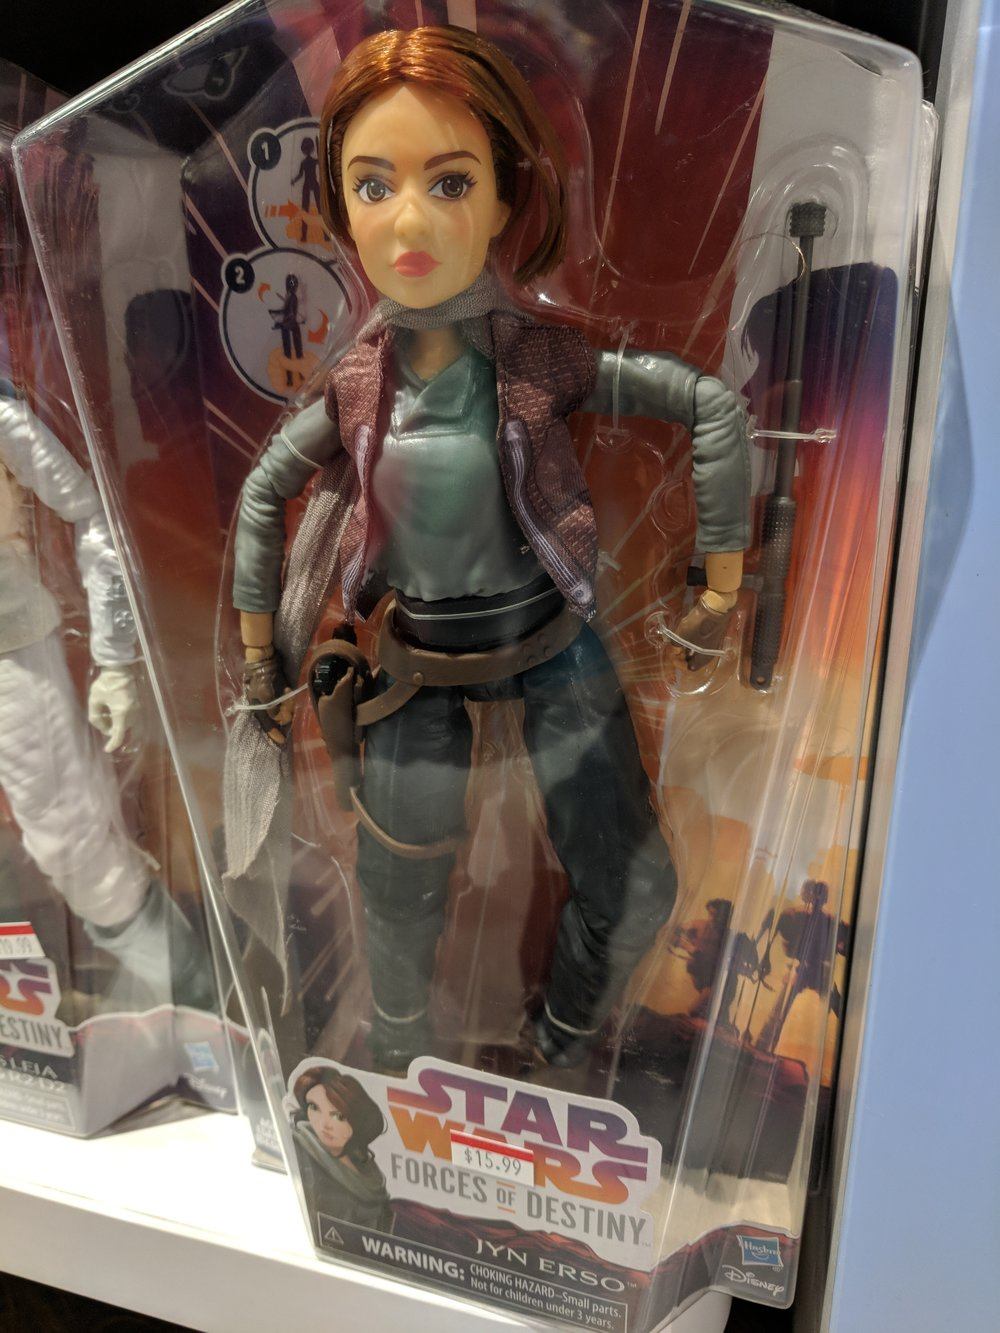 Jyn Erso with...hope? Squeeze her legs together and she looks into the distance awaiting the Death Star